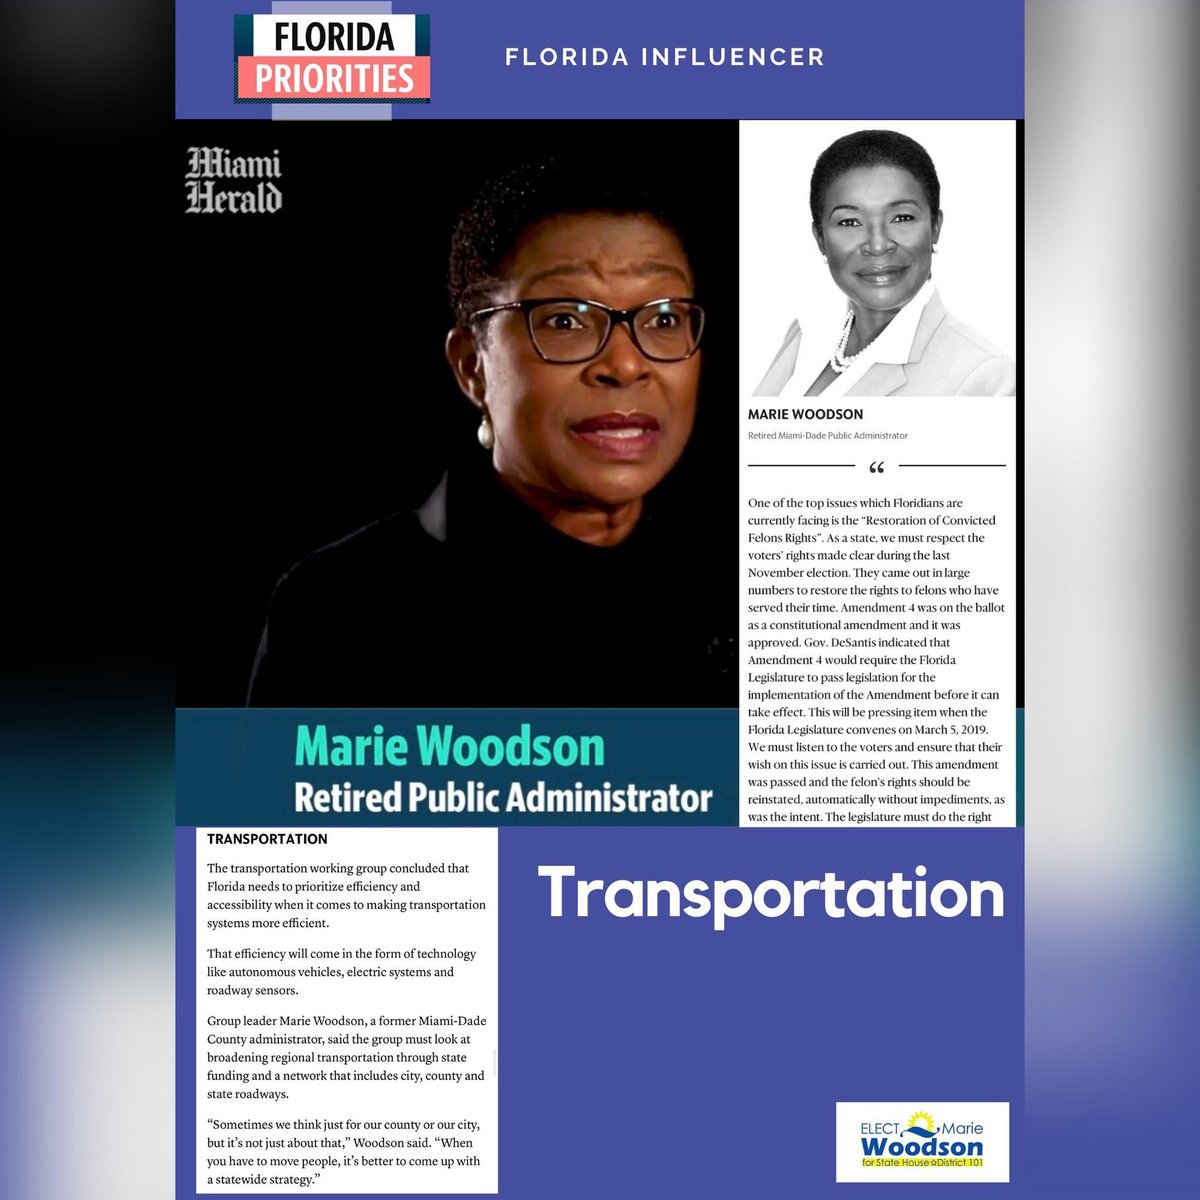 Marie Woodson was chosen as one of the influential leaders in the State to take upon the task of finding ways to discuss and address issues affecting Floridians across the state. A sincere thanks to the Miami-Herald for spearheading such an important initiative! ⁣ #MiamiHerald